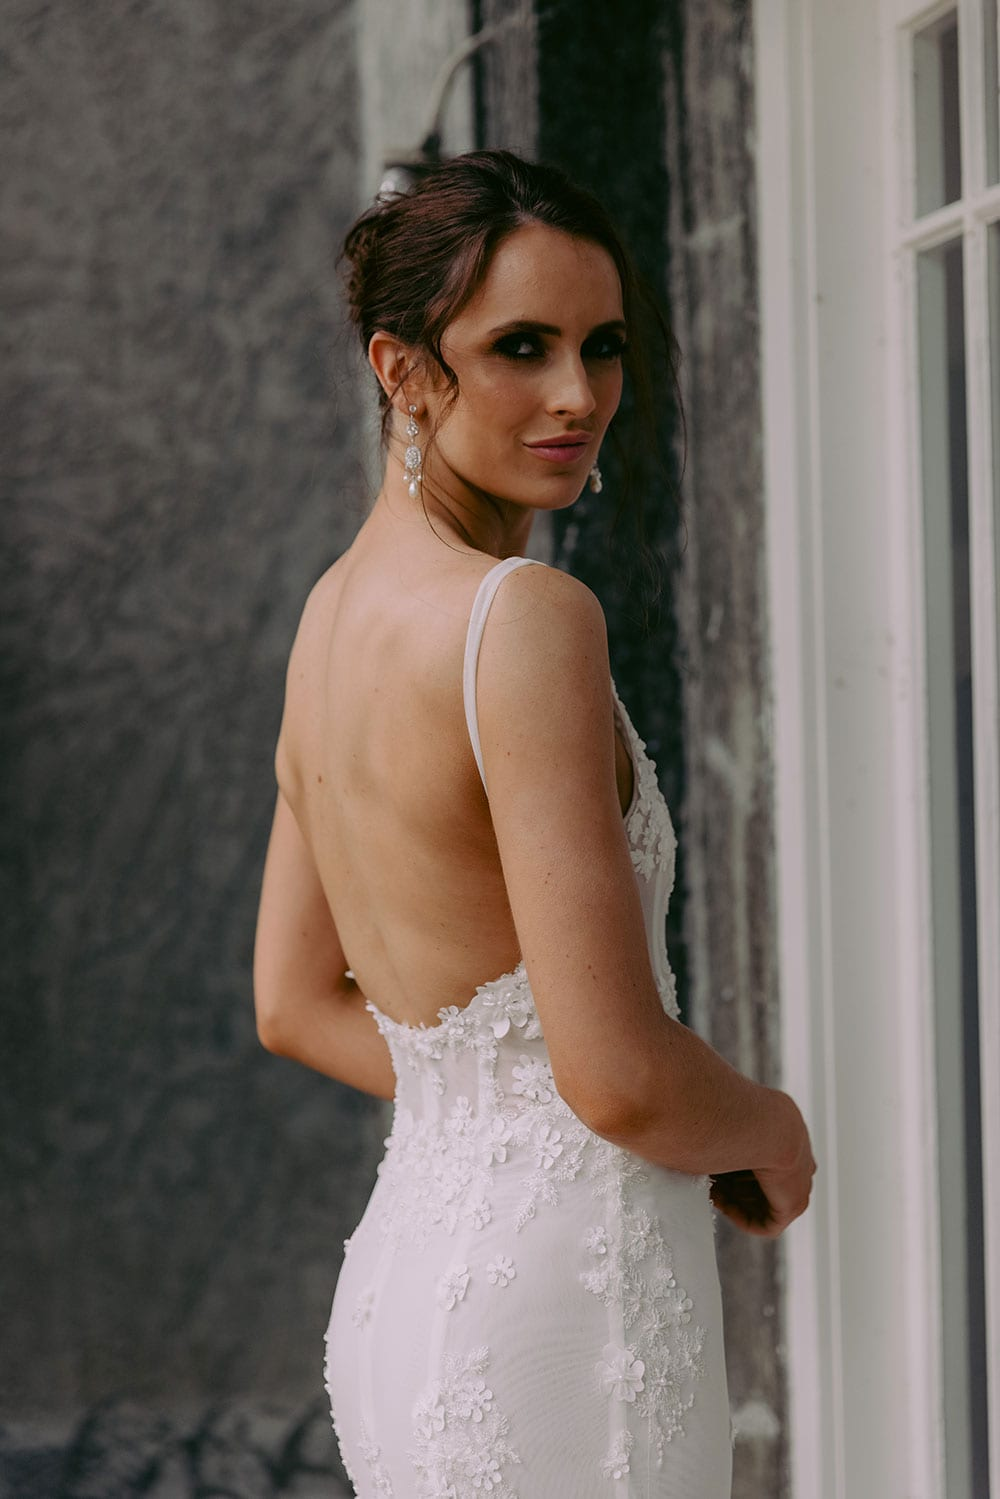 E'more Wedding gown from Vinka Design - This stunning lace wedding gown is hand sewn with a fully beaded 3D flower embroidery. Structured and boned bodice with scoop neckline in the front and low back. Stretch fit skirt flares into full lace train. Model wearing gown outside heritage building showing low back detail.